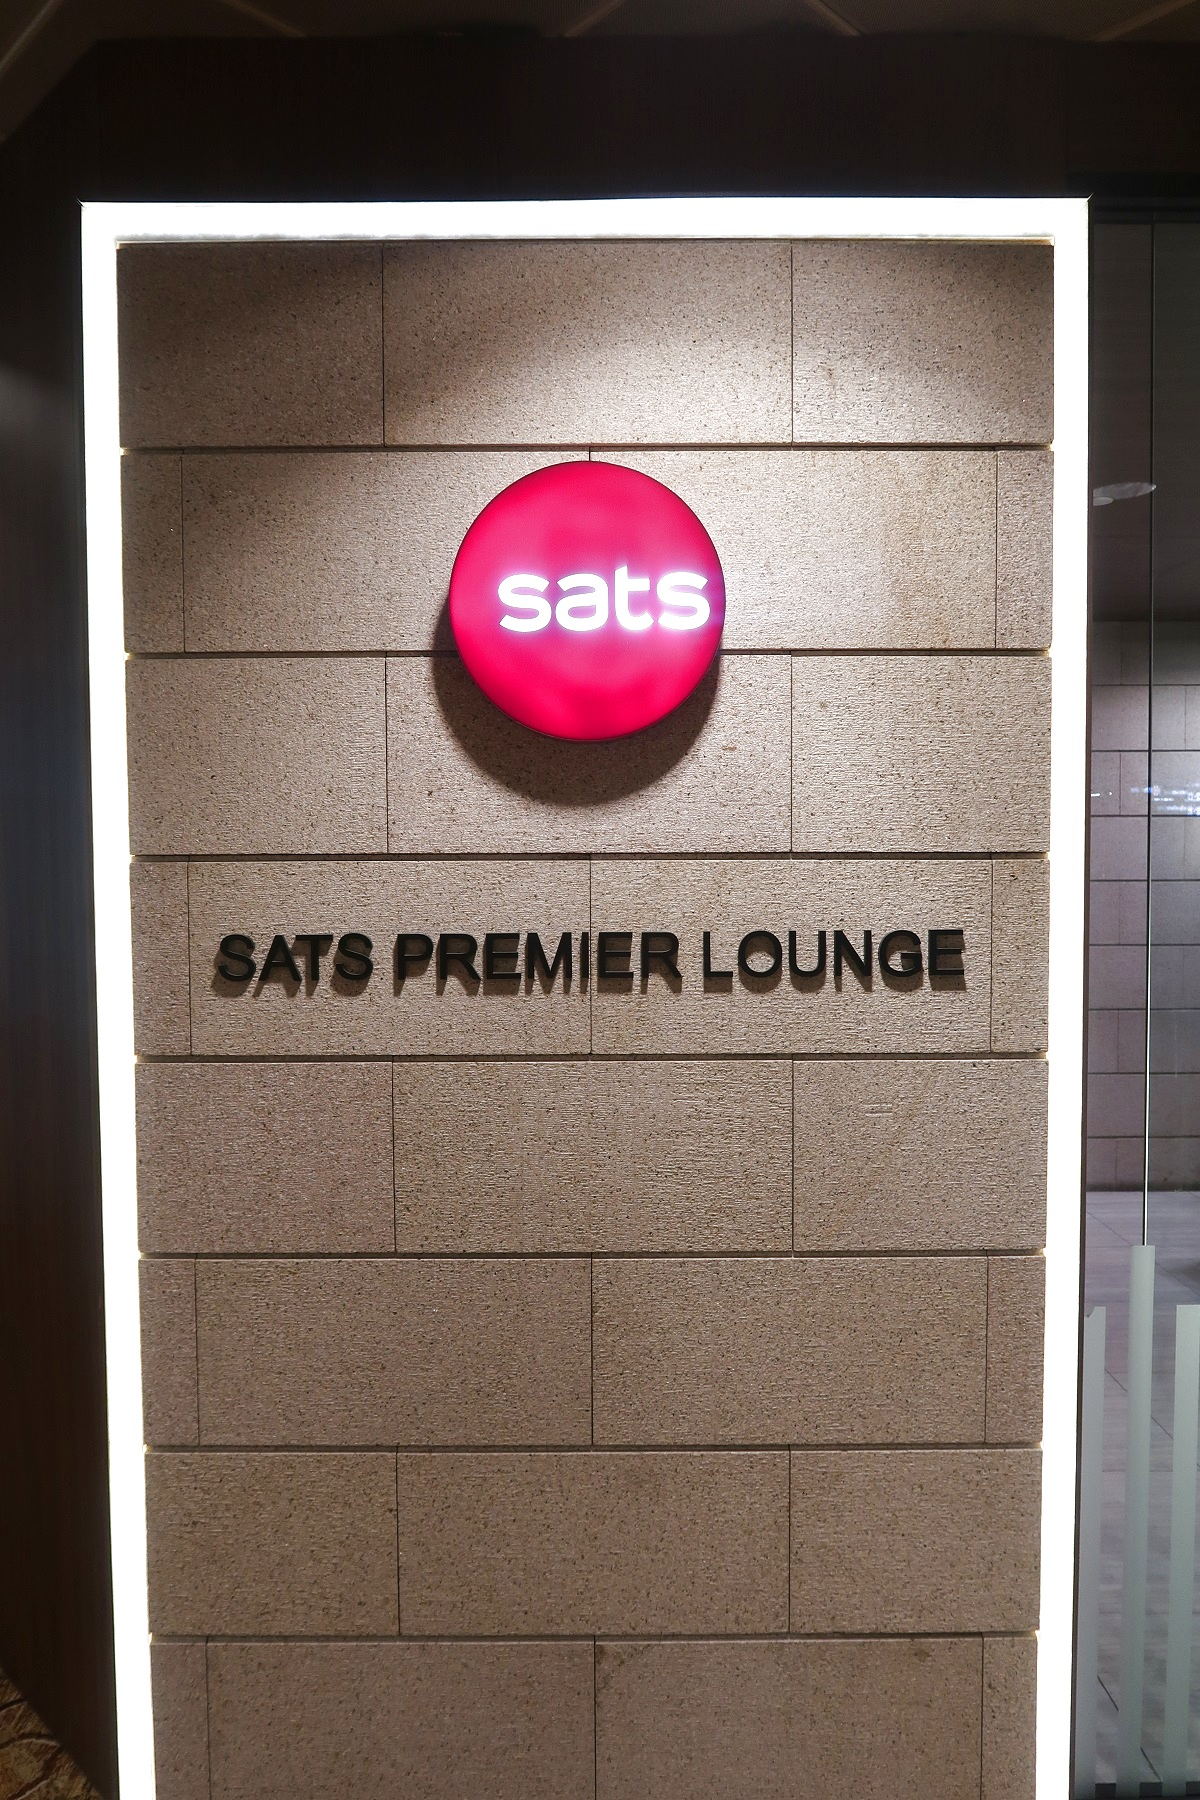 SATS Premier Lounge Terminal 2 Singapore Airport sign